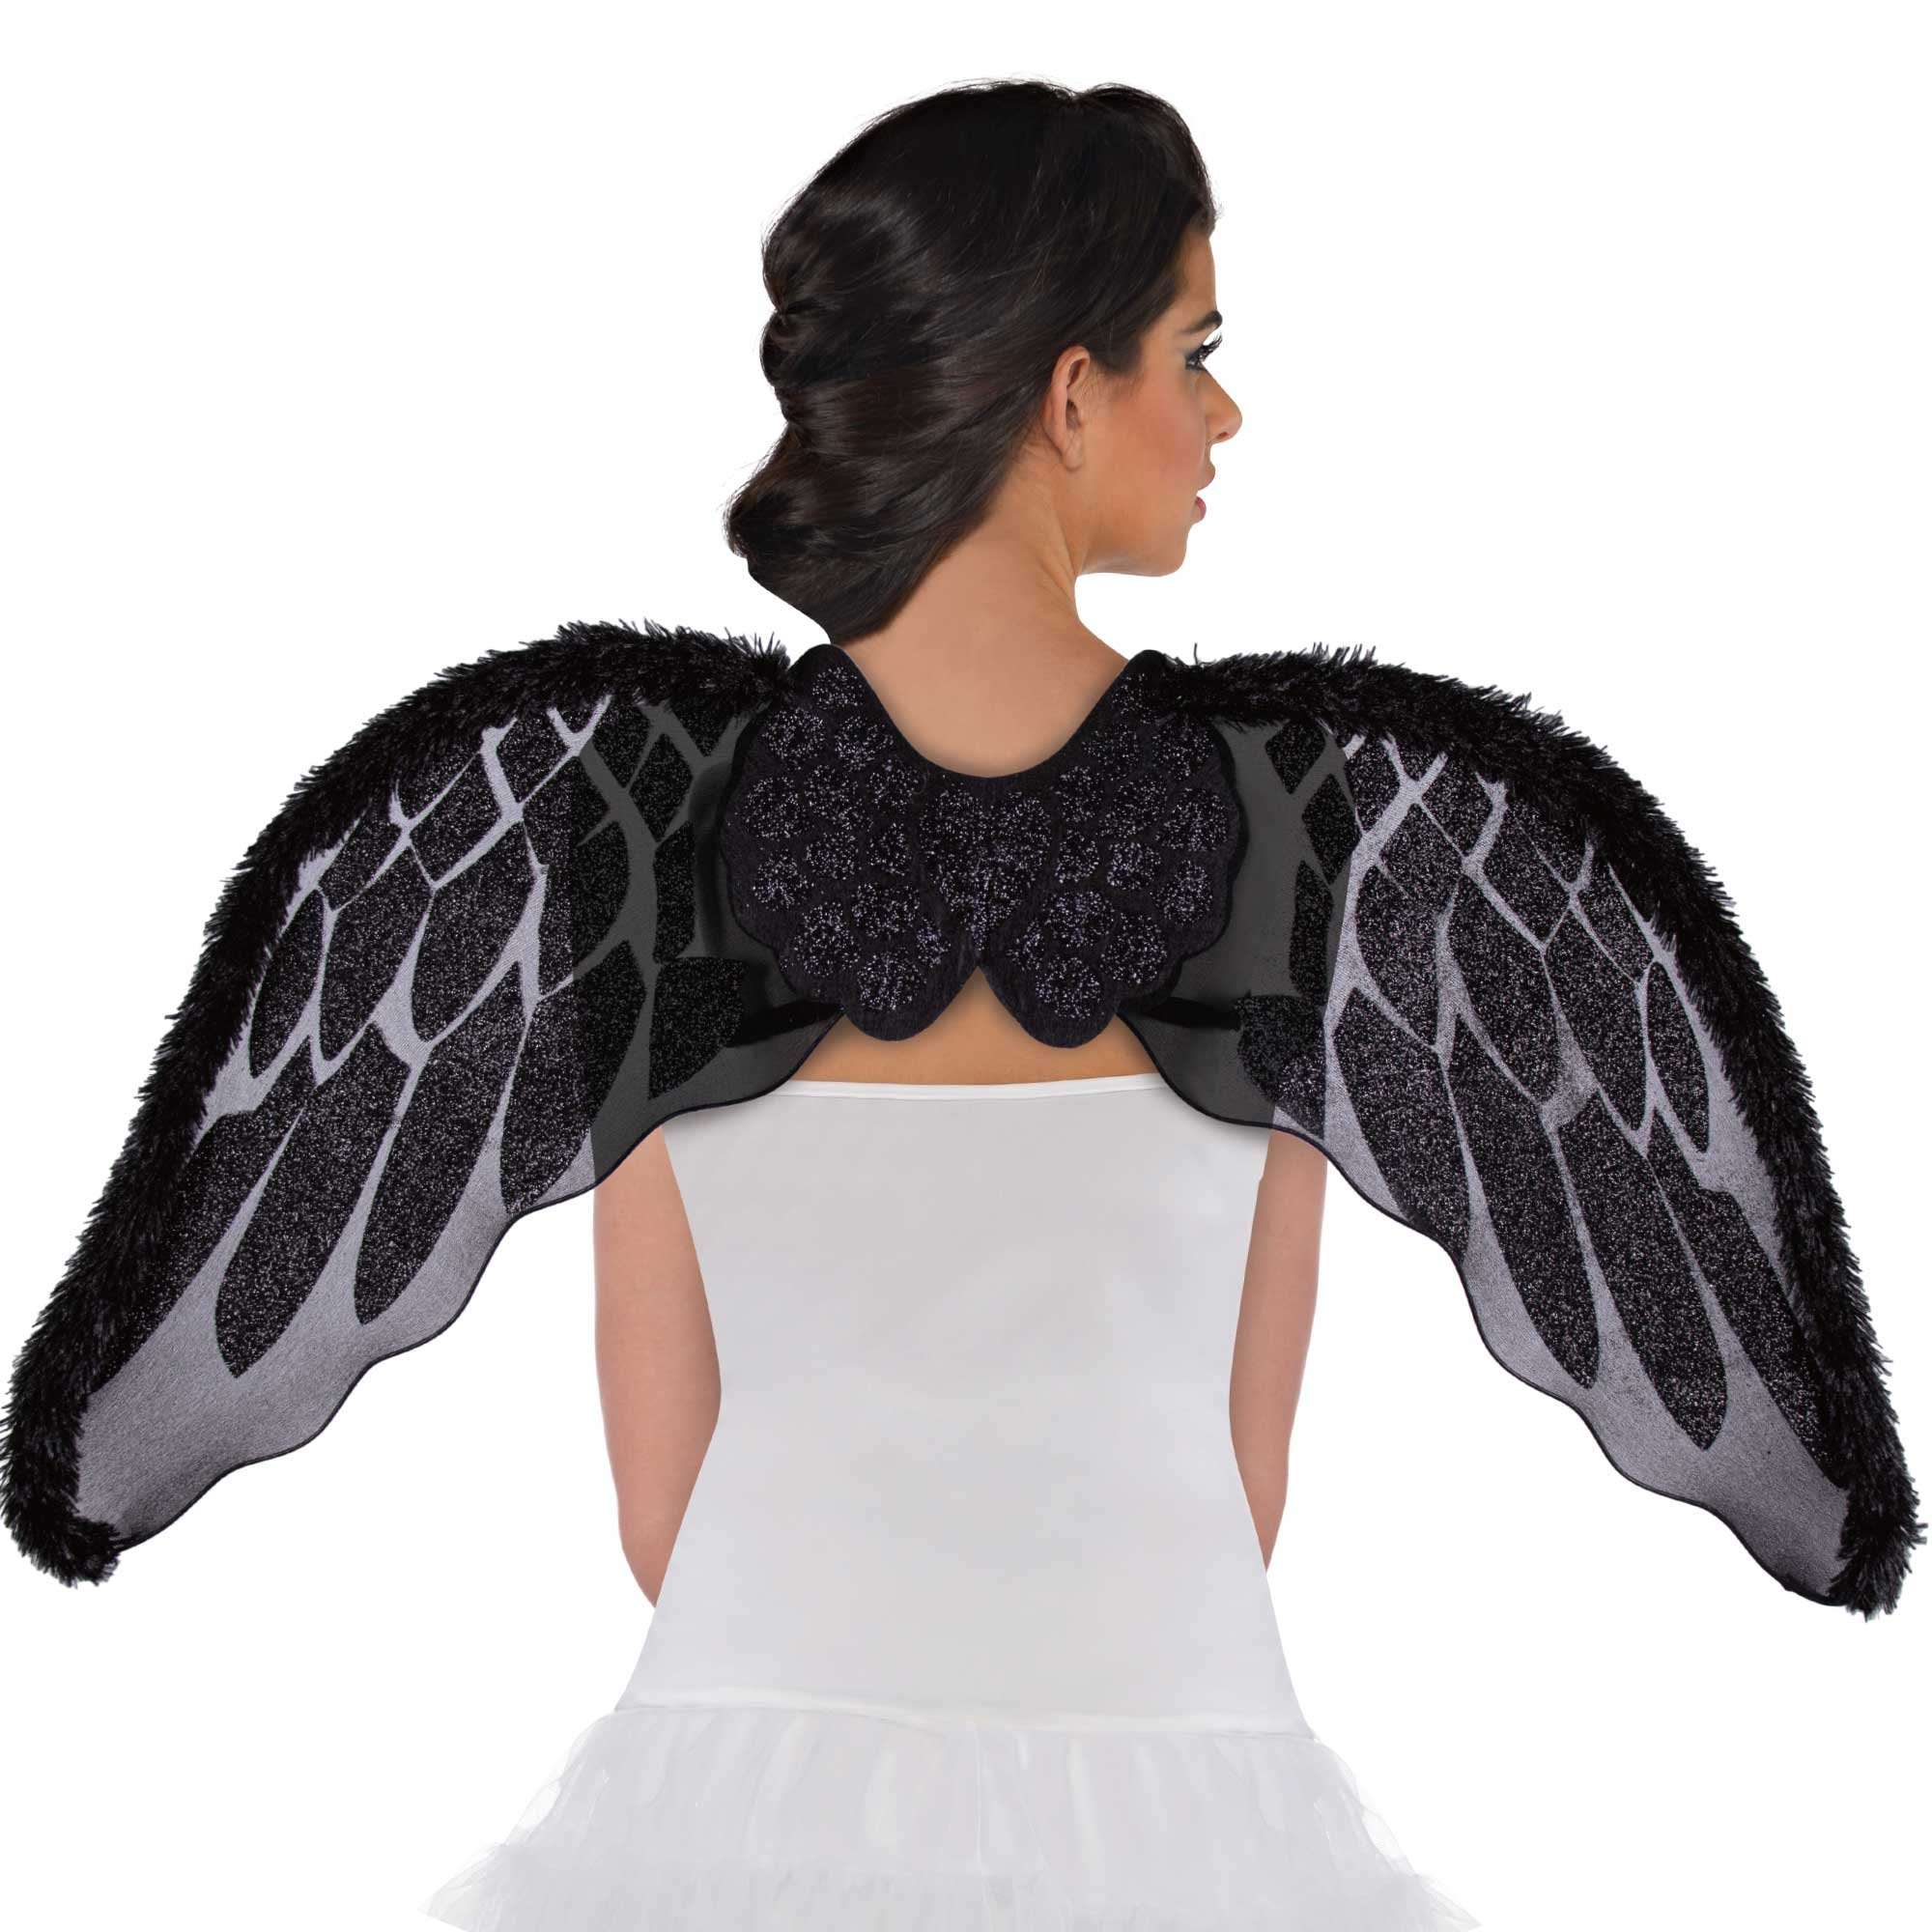 Angel Wings Black Marabou Faux Fur